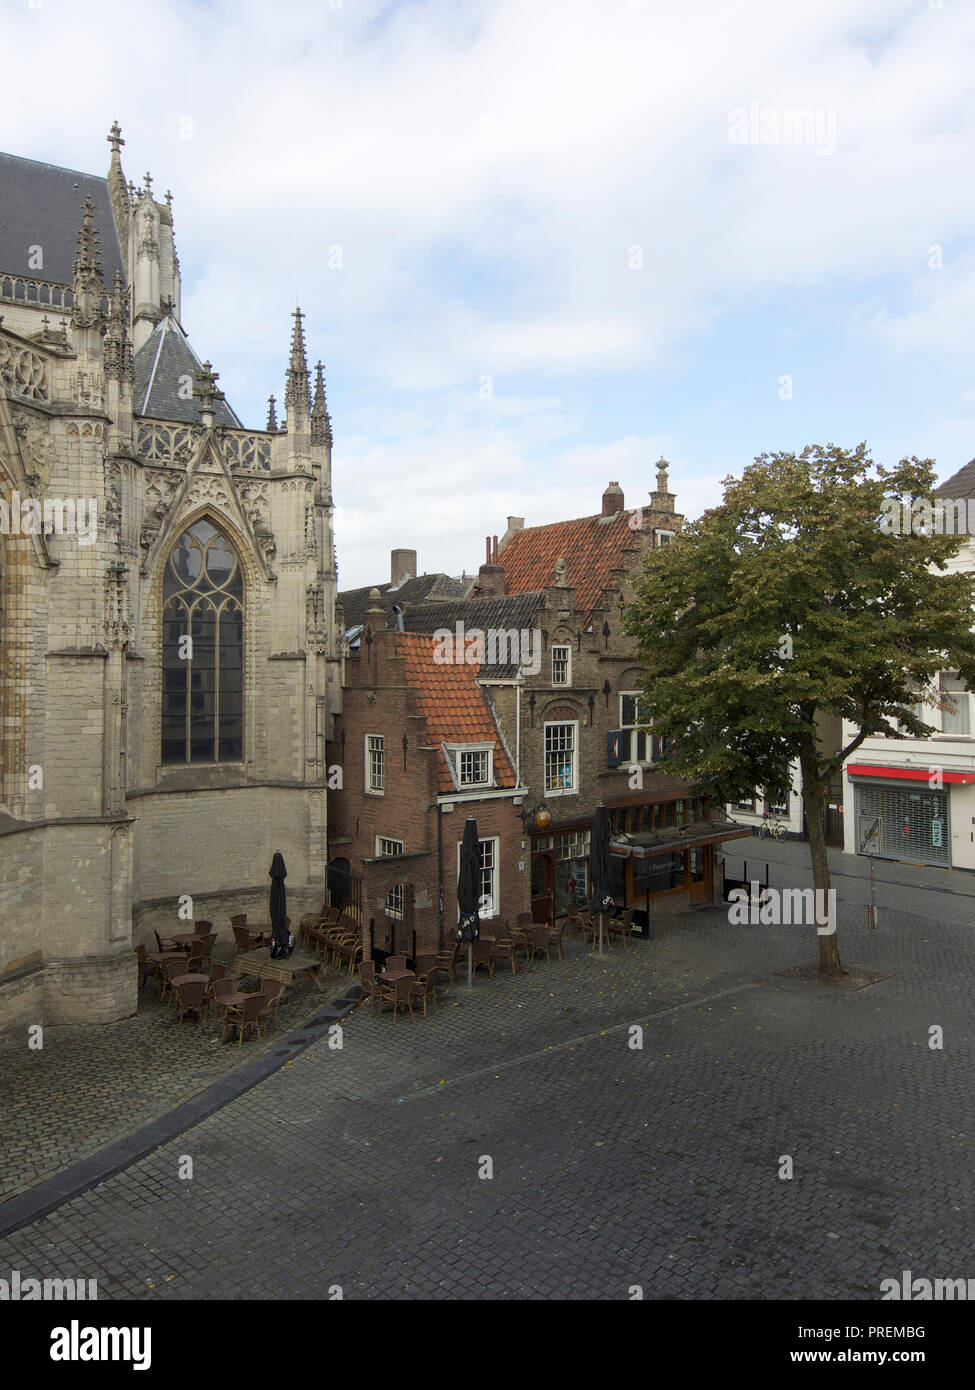 Small medieval buildings next to the grand chruch of Breda. - Stock Image